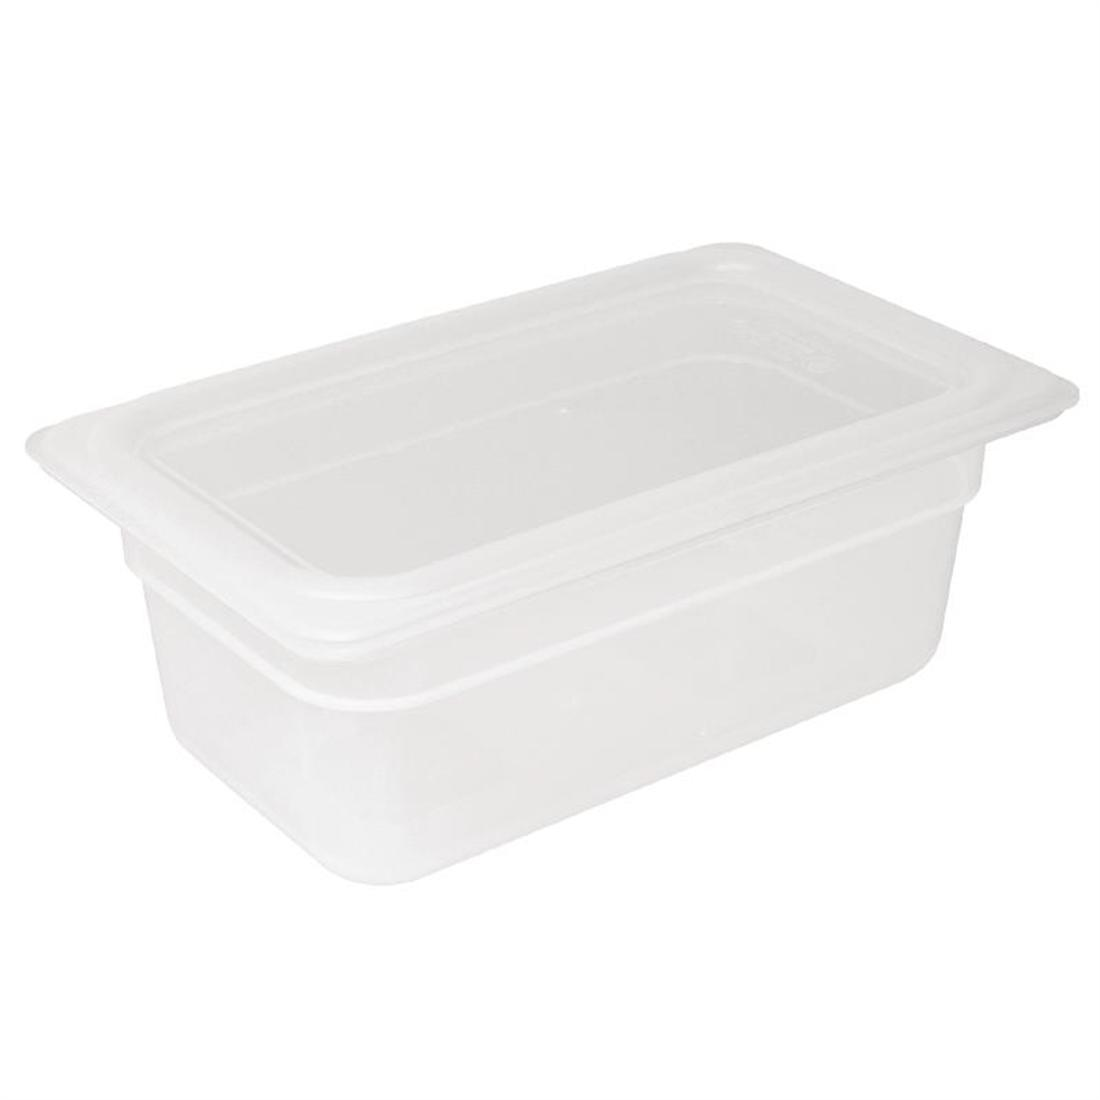 Vogue Polypropylene 1/4 Gastronorm Container with Lid 150mm - Pack of 4 - GJ524